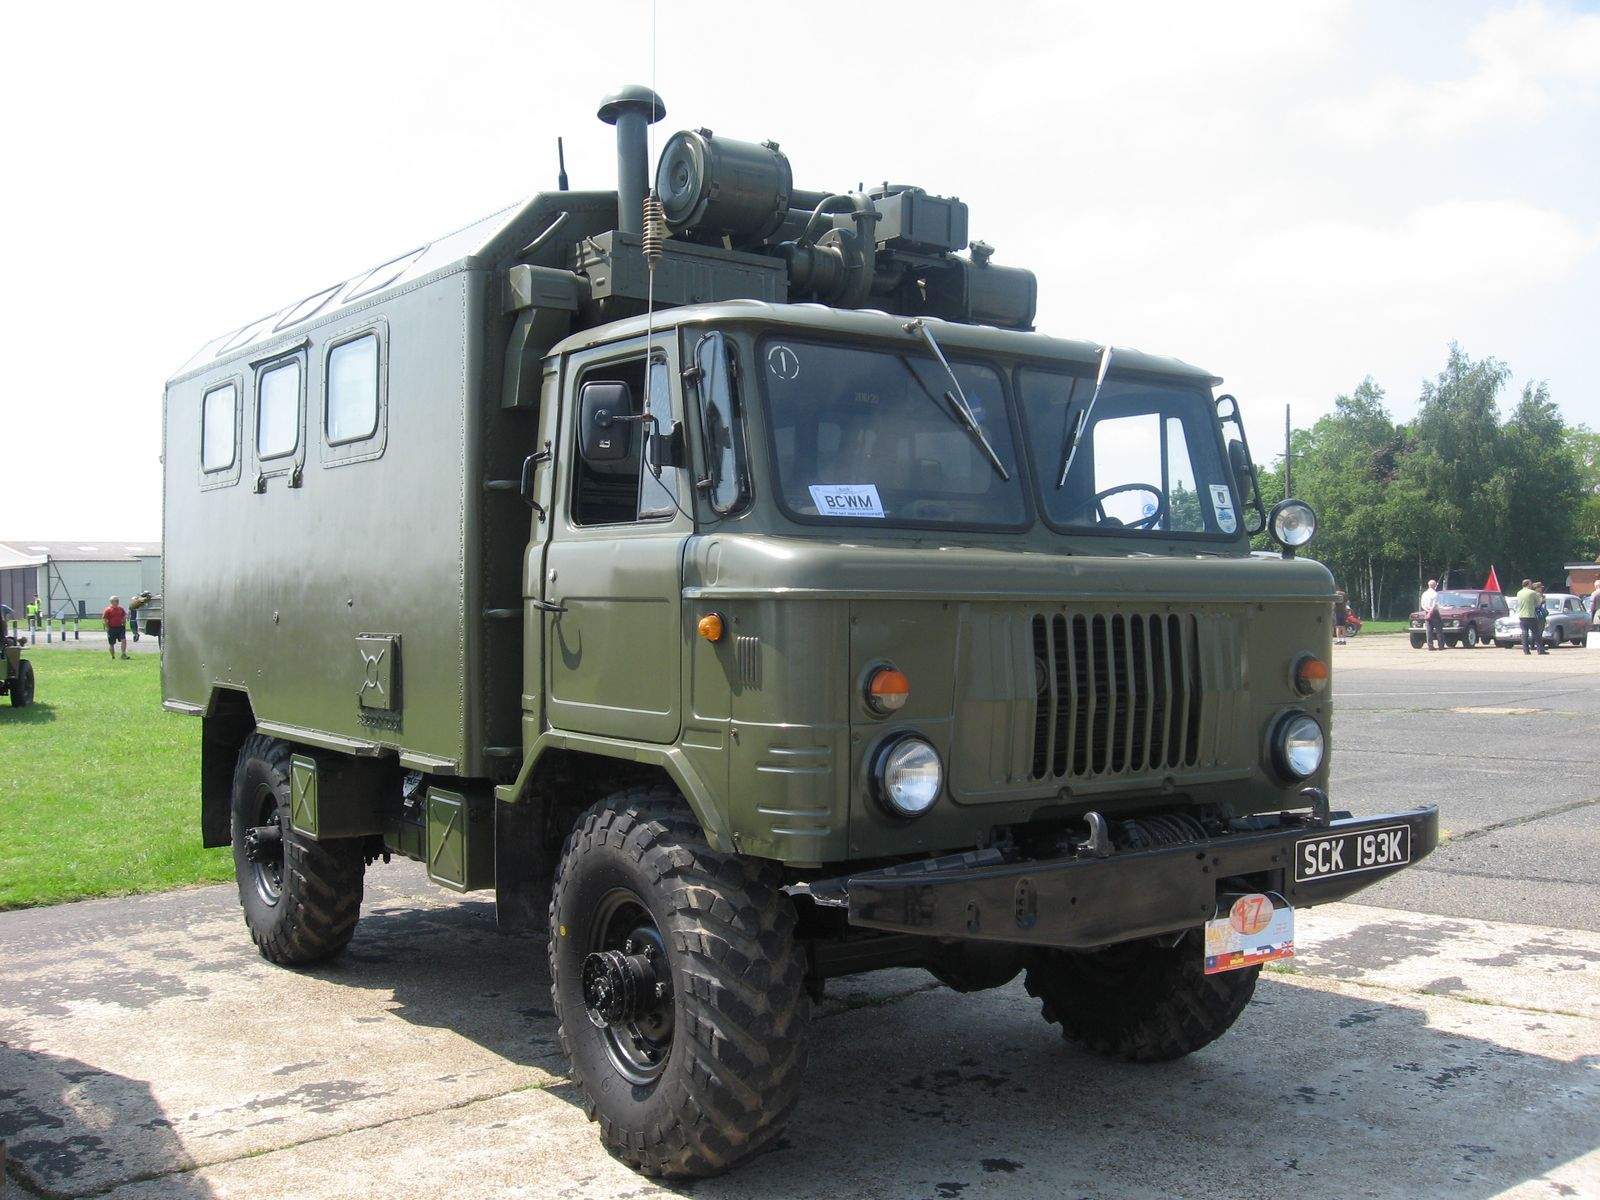 Giant Russian SUV Converted from an Army Truck